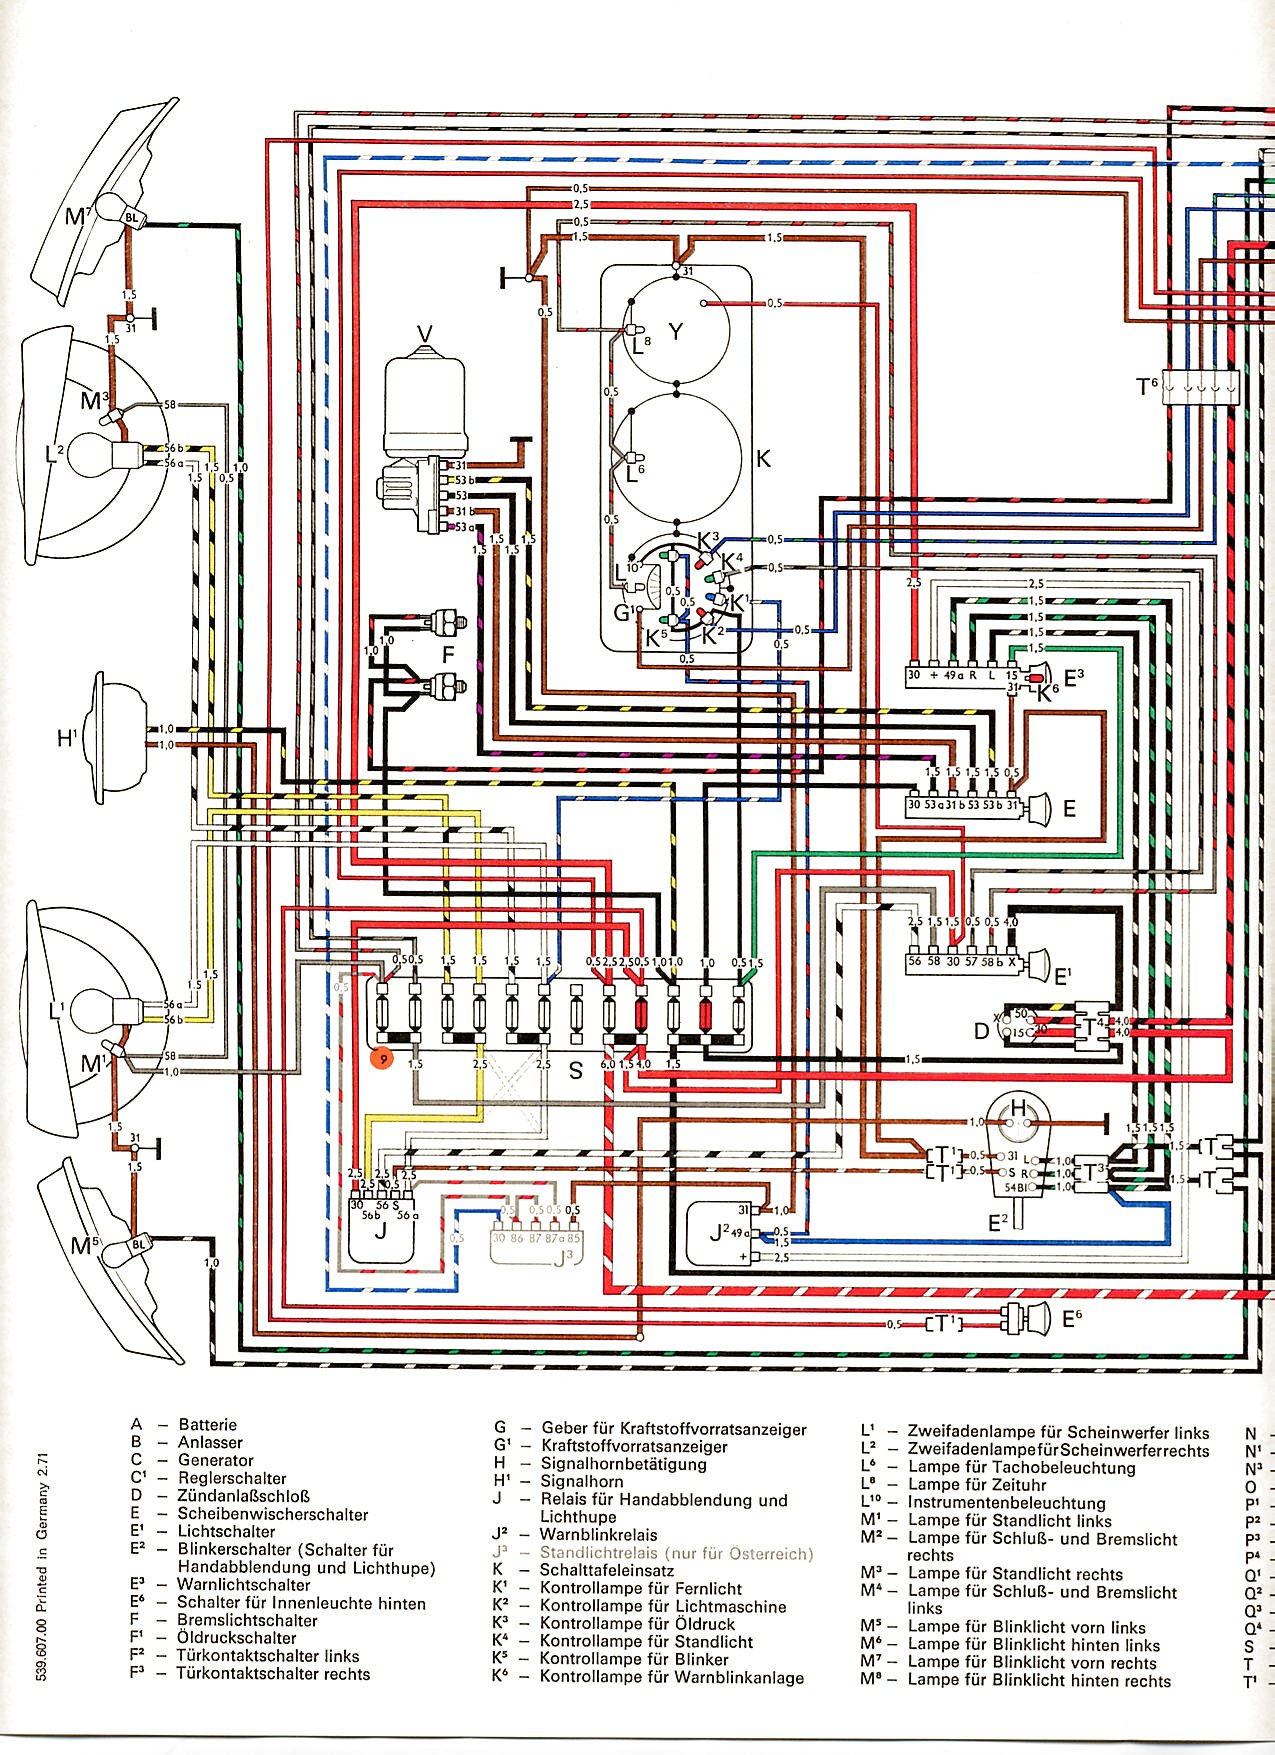 vintagebus com vw bus and other wiring diagrams rh vintagebus com VW Beetle Generator Wiring Diagram 1976 volkswagen beetle wiring diagram